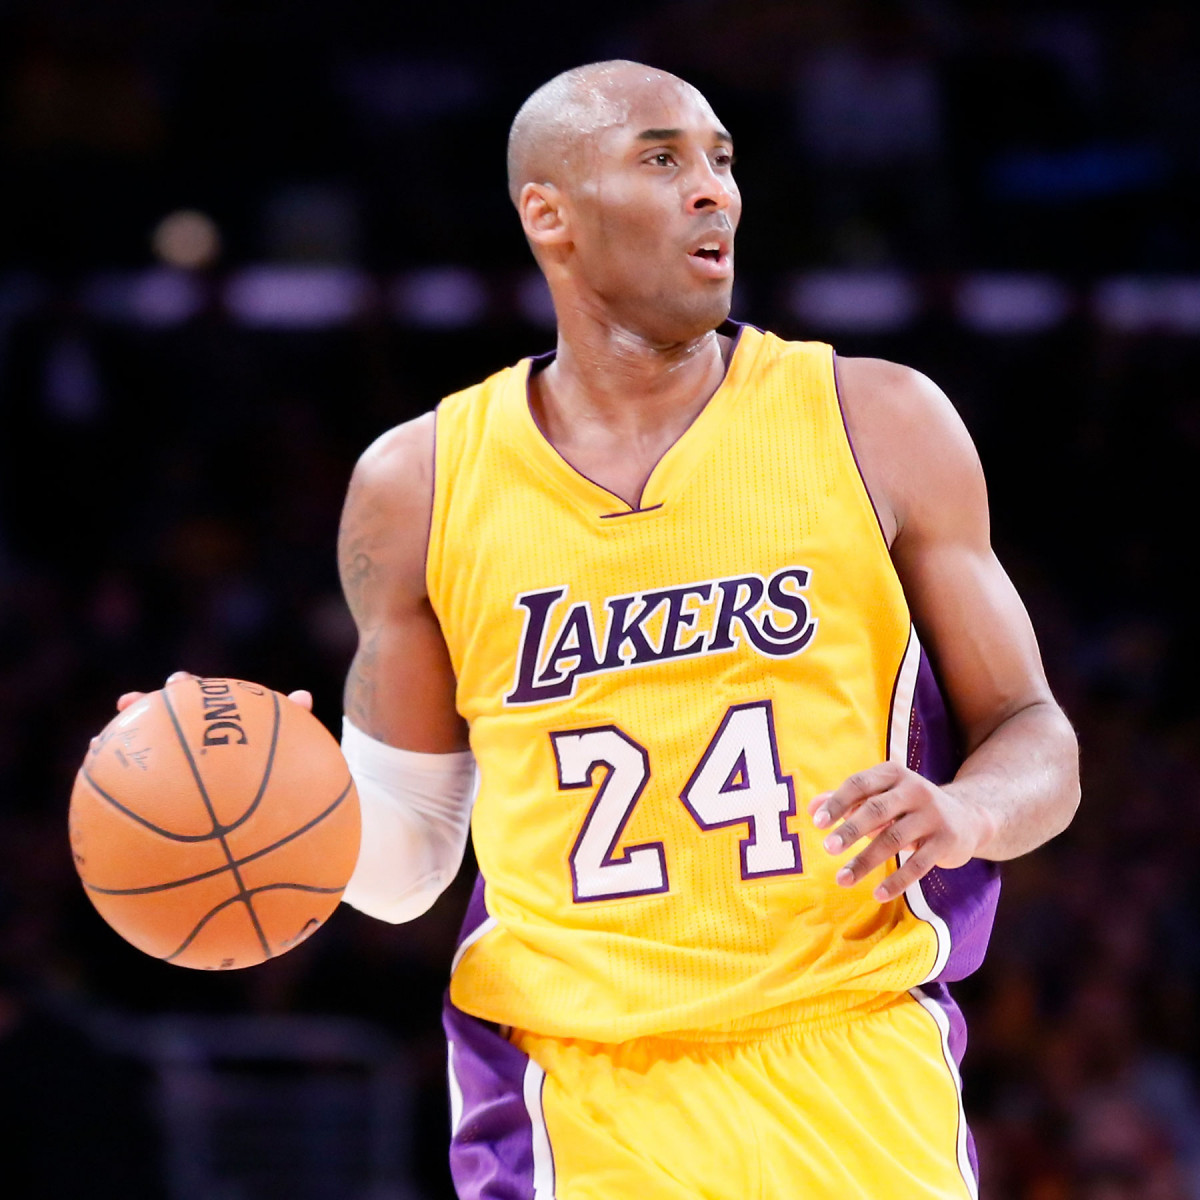 Stats: Kobe Bryant's Top 10 Scoring Games